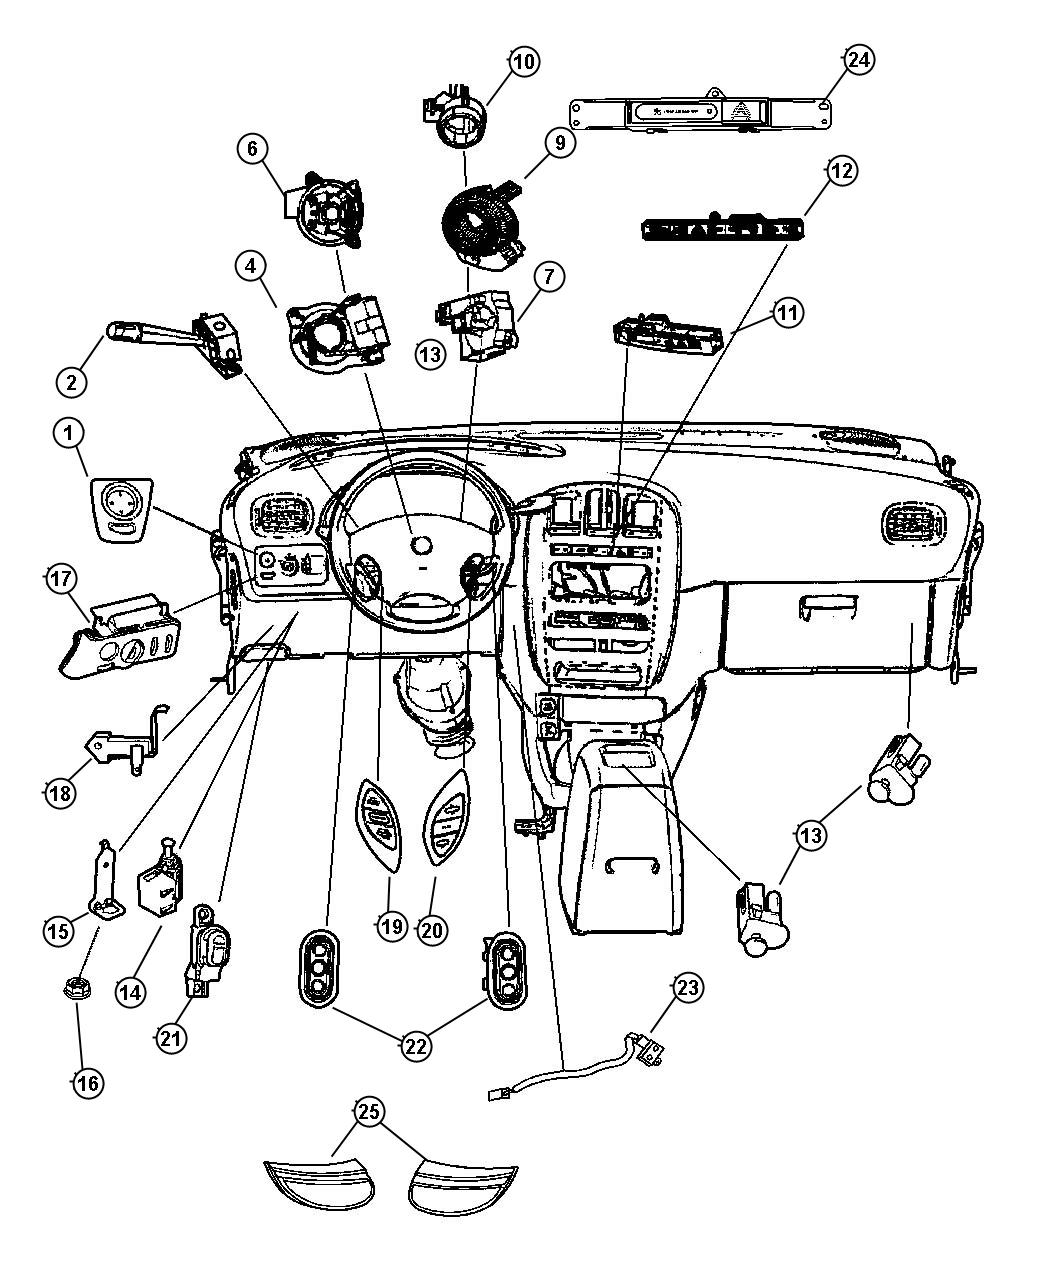 2006 Chrysler Town & Country Switches, Instrument Panel